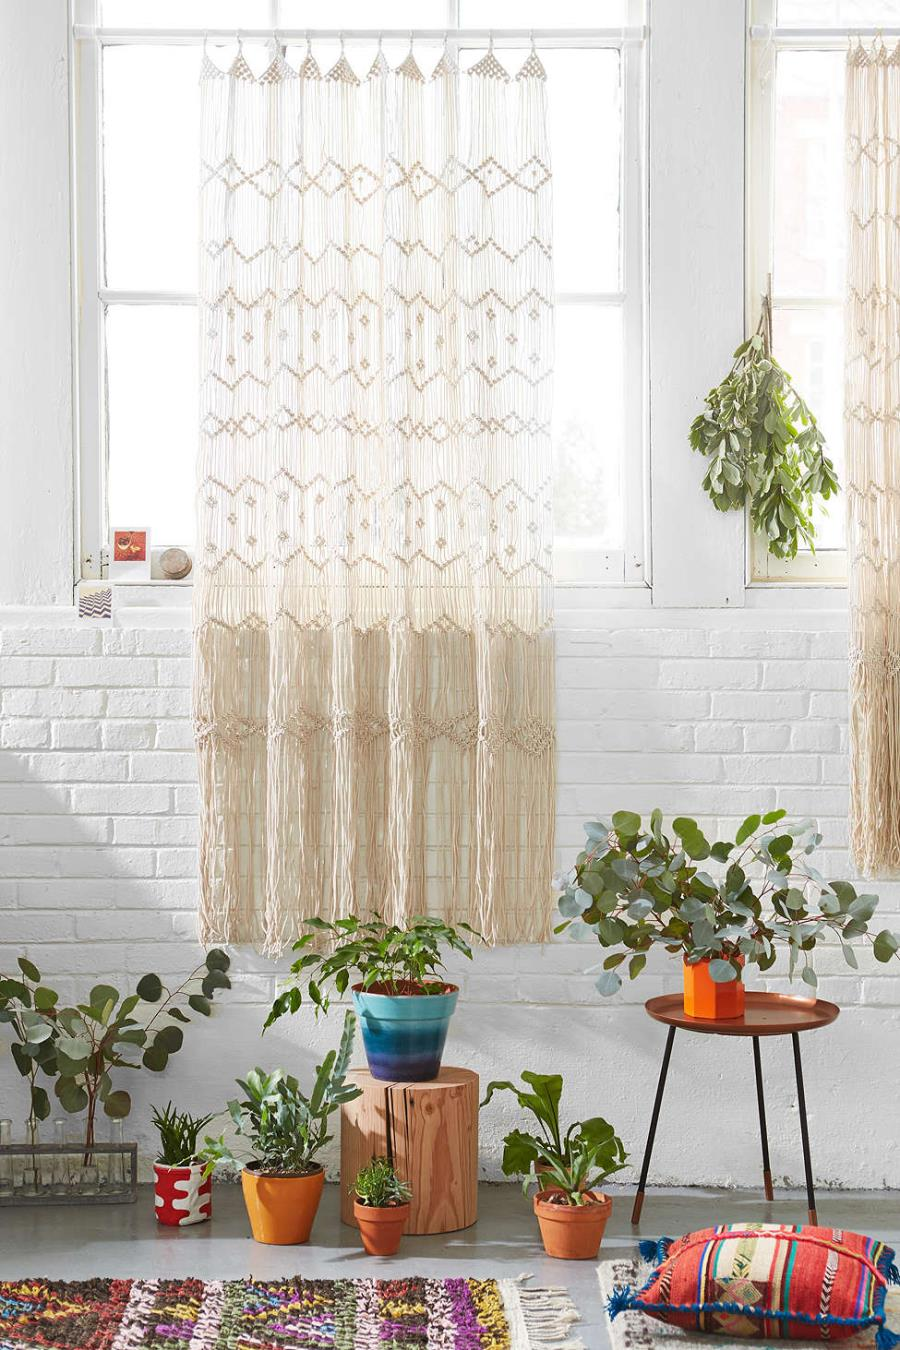 Macrame wall hanging against a white brick wall